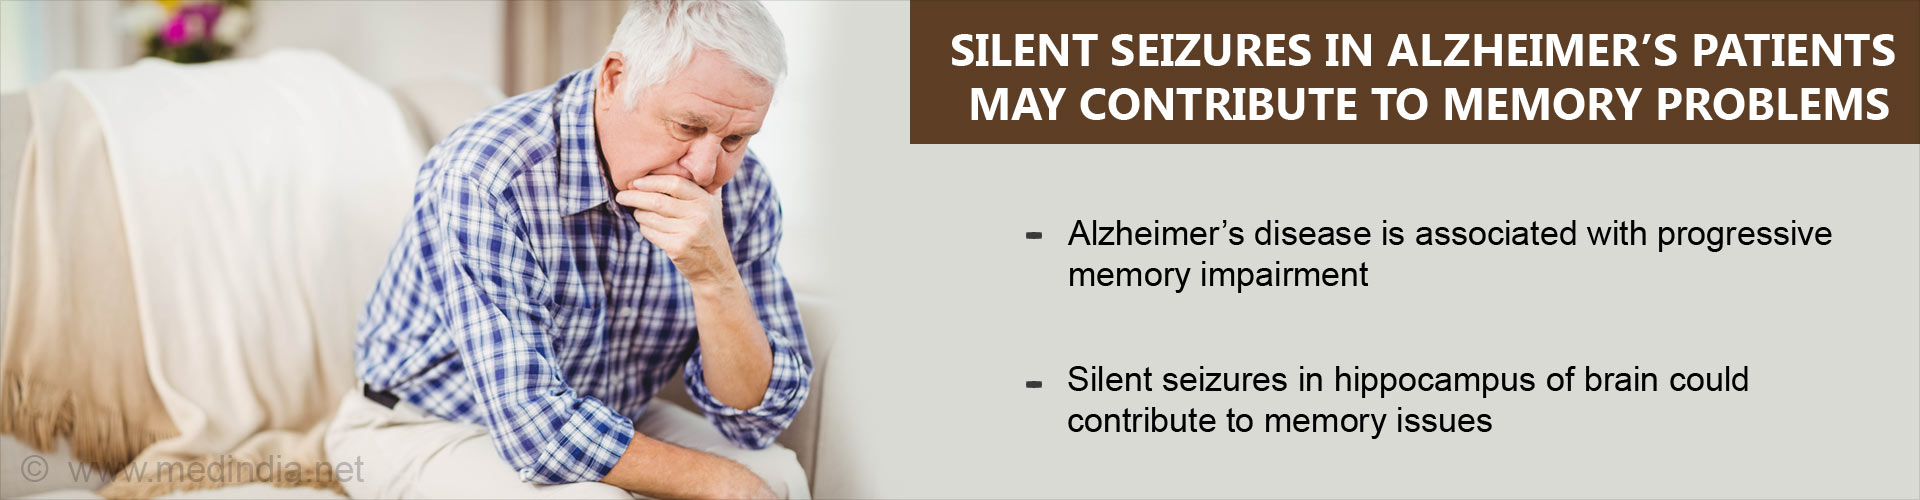 Silent seizures in Alzheimer''s patients may contribute to memory problems - Alzheimer''s disease is associated with progressive memory impairment - Silent seizures in hippocampus of brain could contribute to memory issues